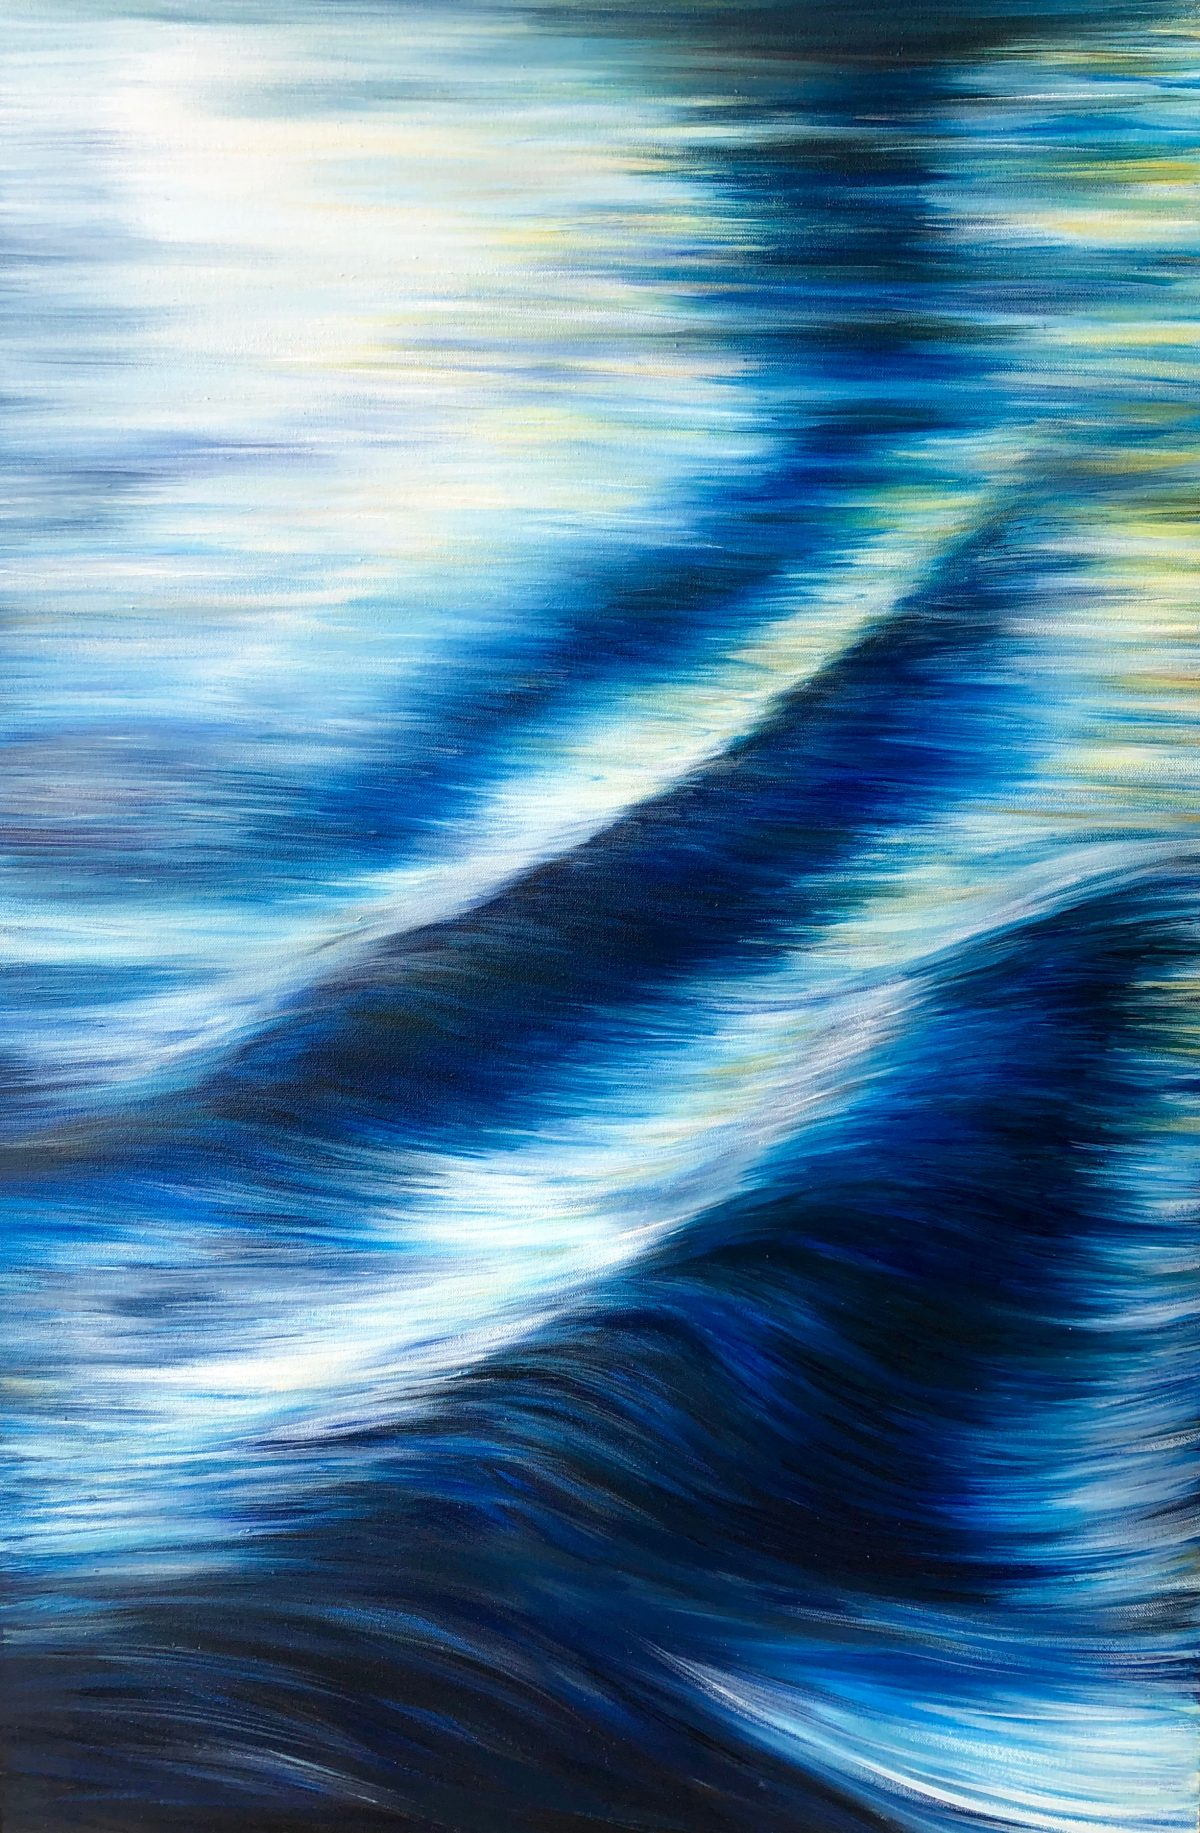 Oil painting of a slow flowing river